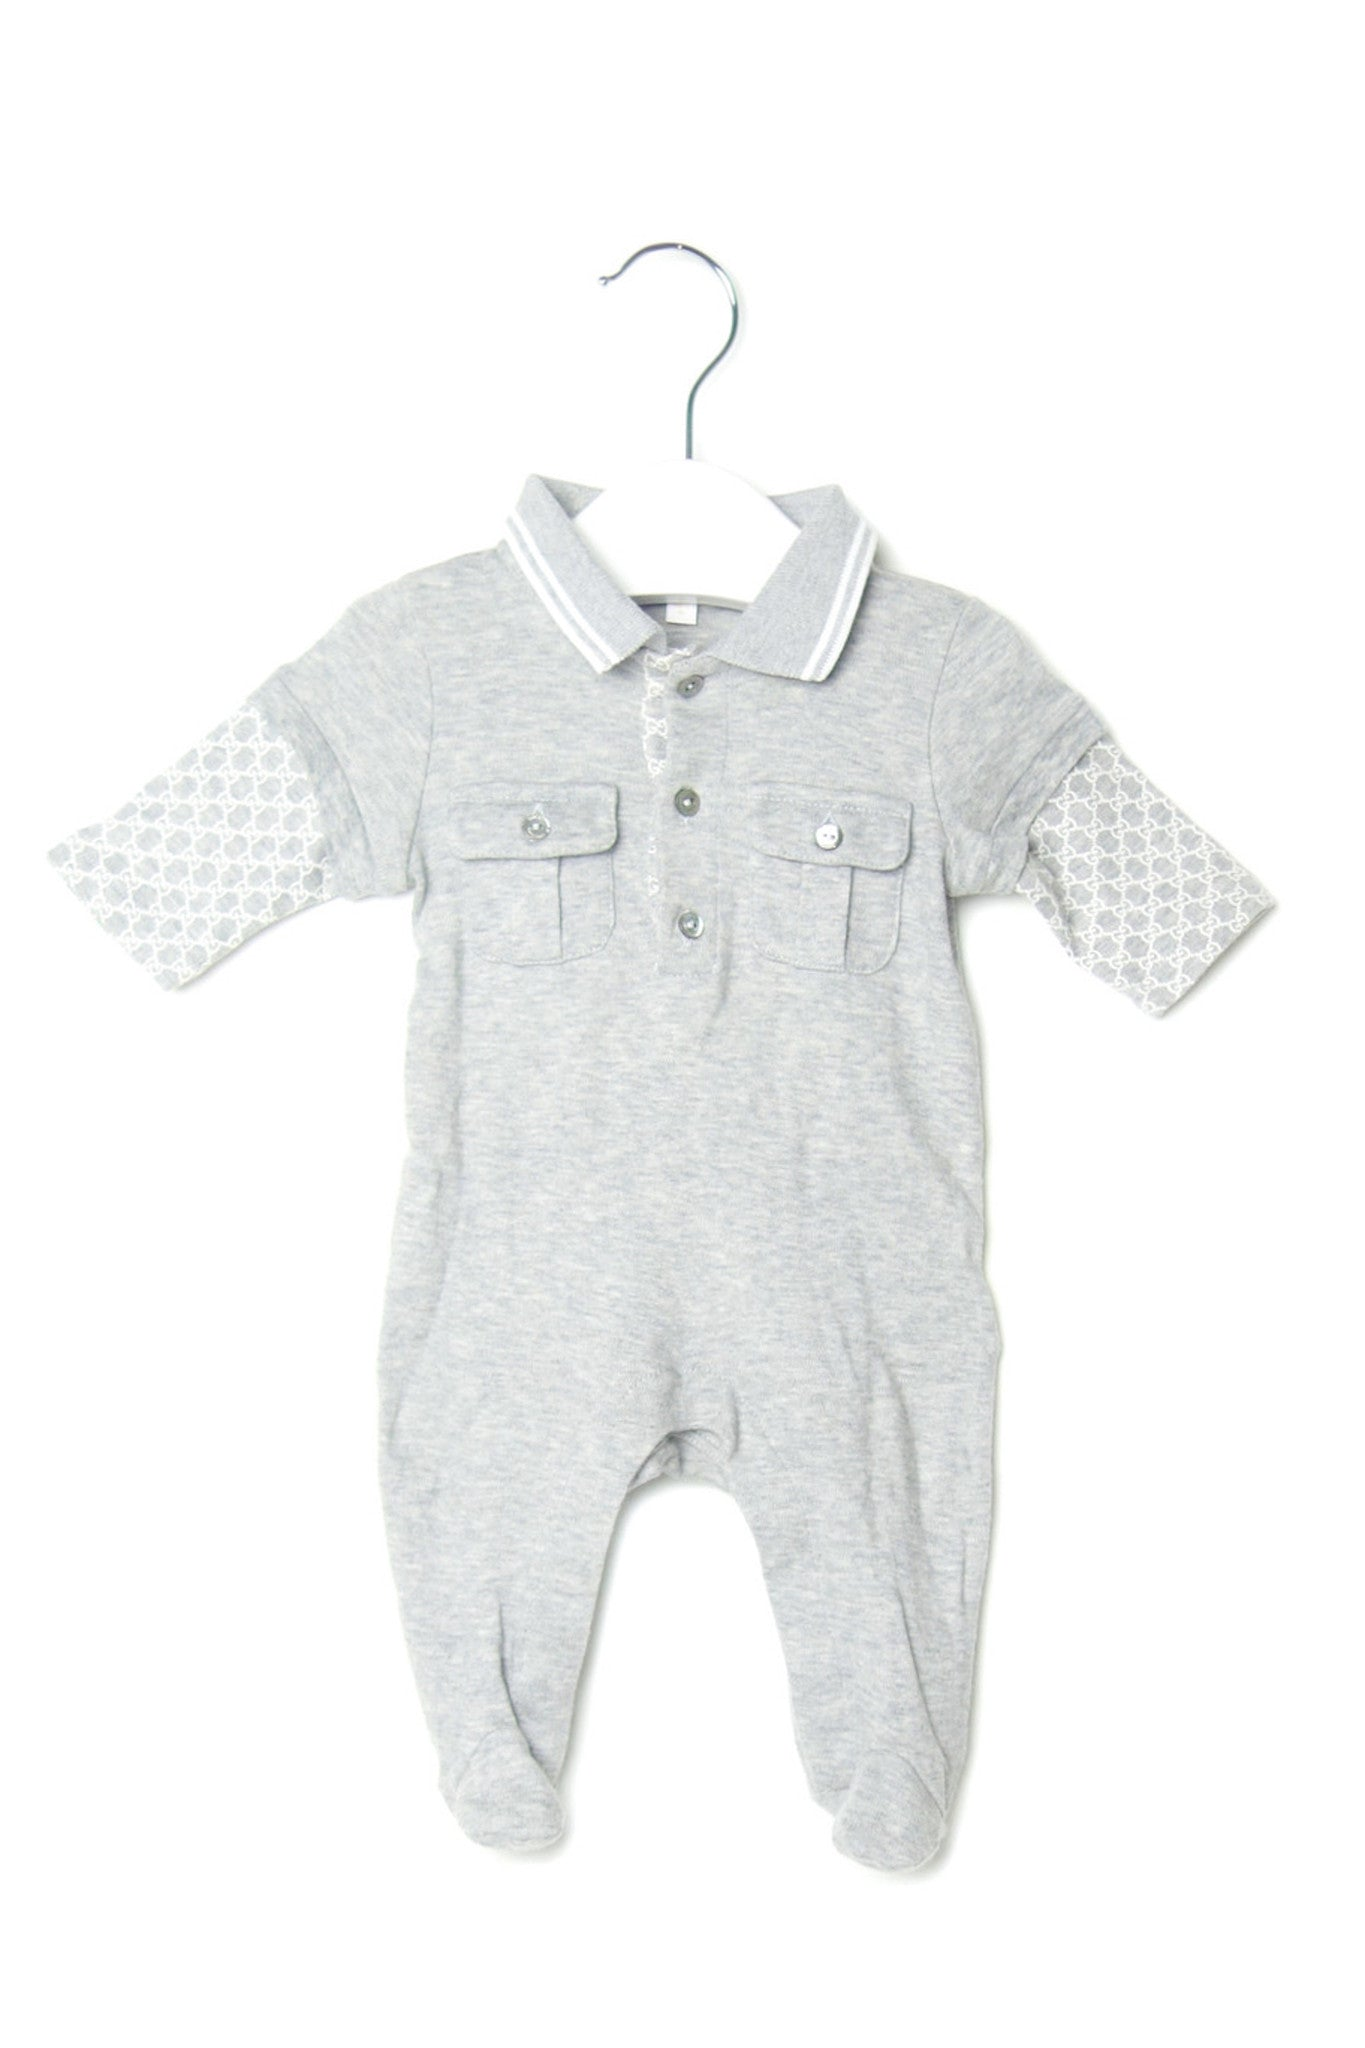 10001995 Gucci Baby~Jumpsuit 0-3M at Retykle